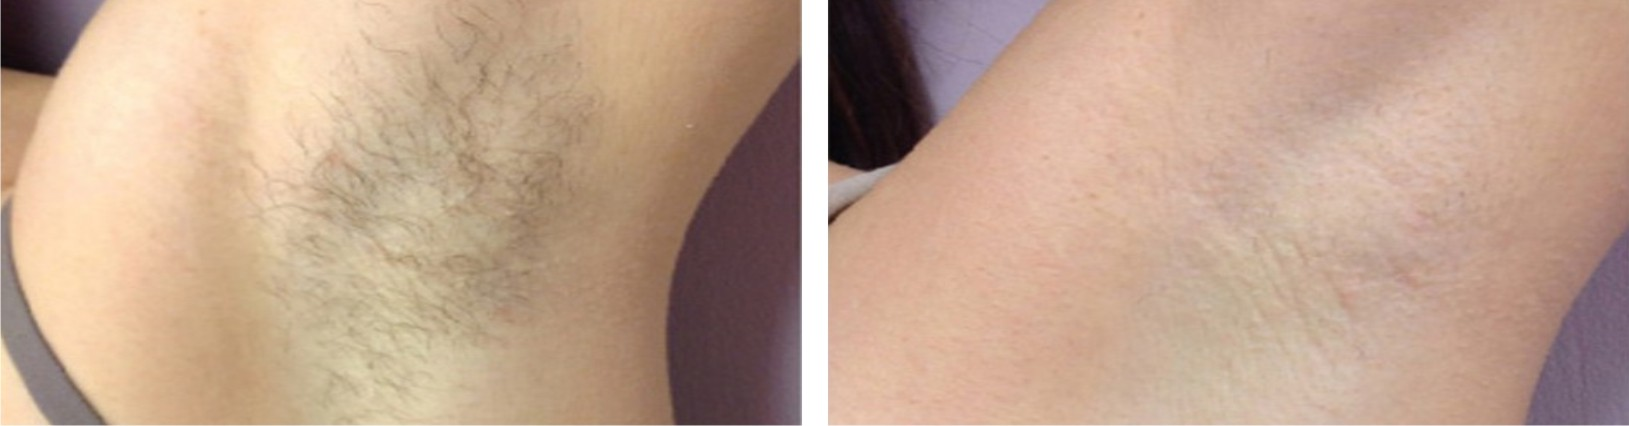 Painless Laser Hair Removal Image Three